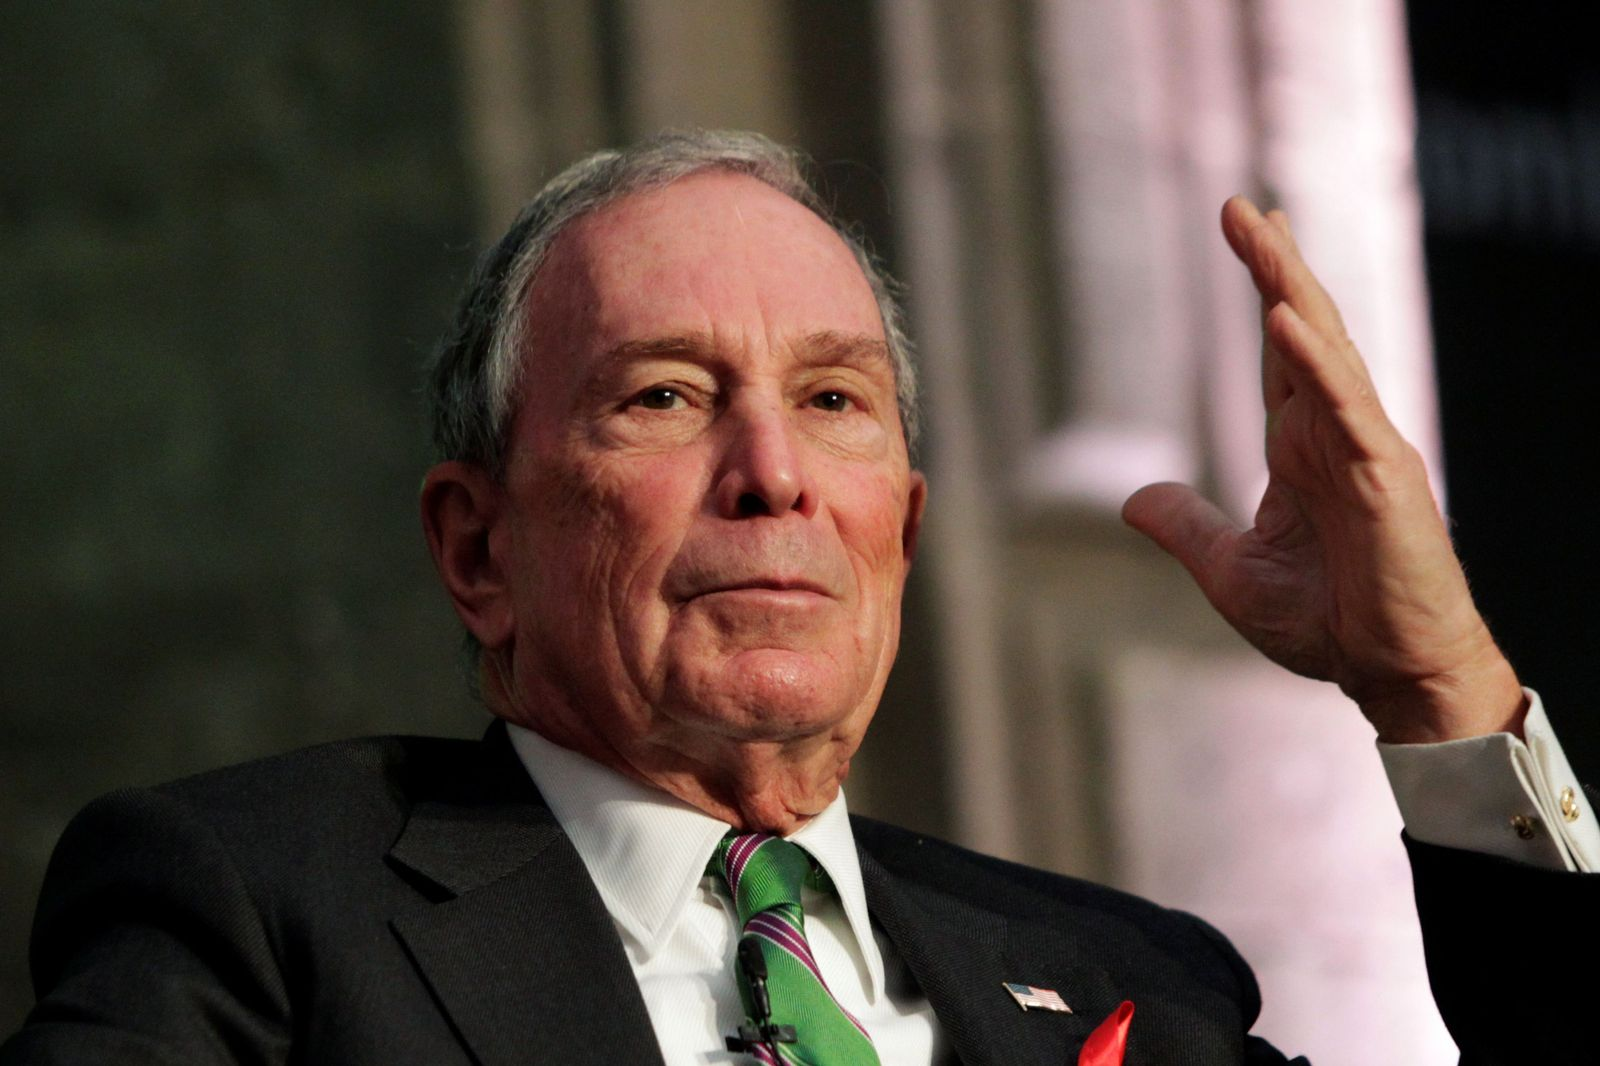 Michael Bloomberg / Milliardäre